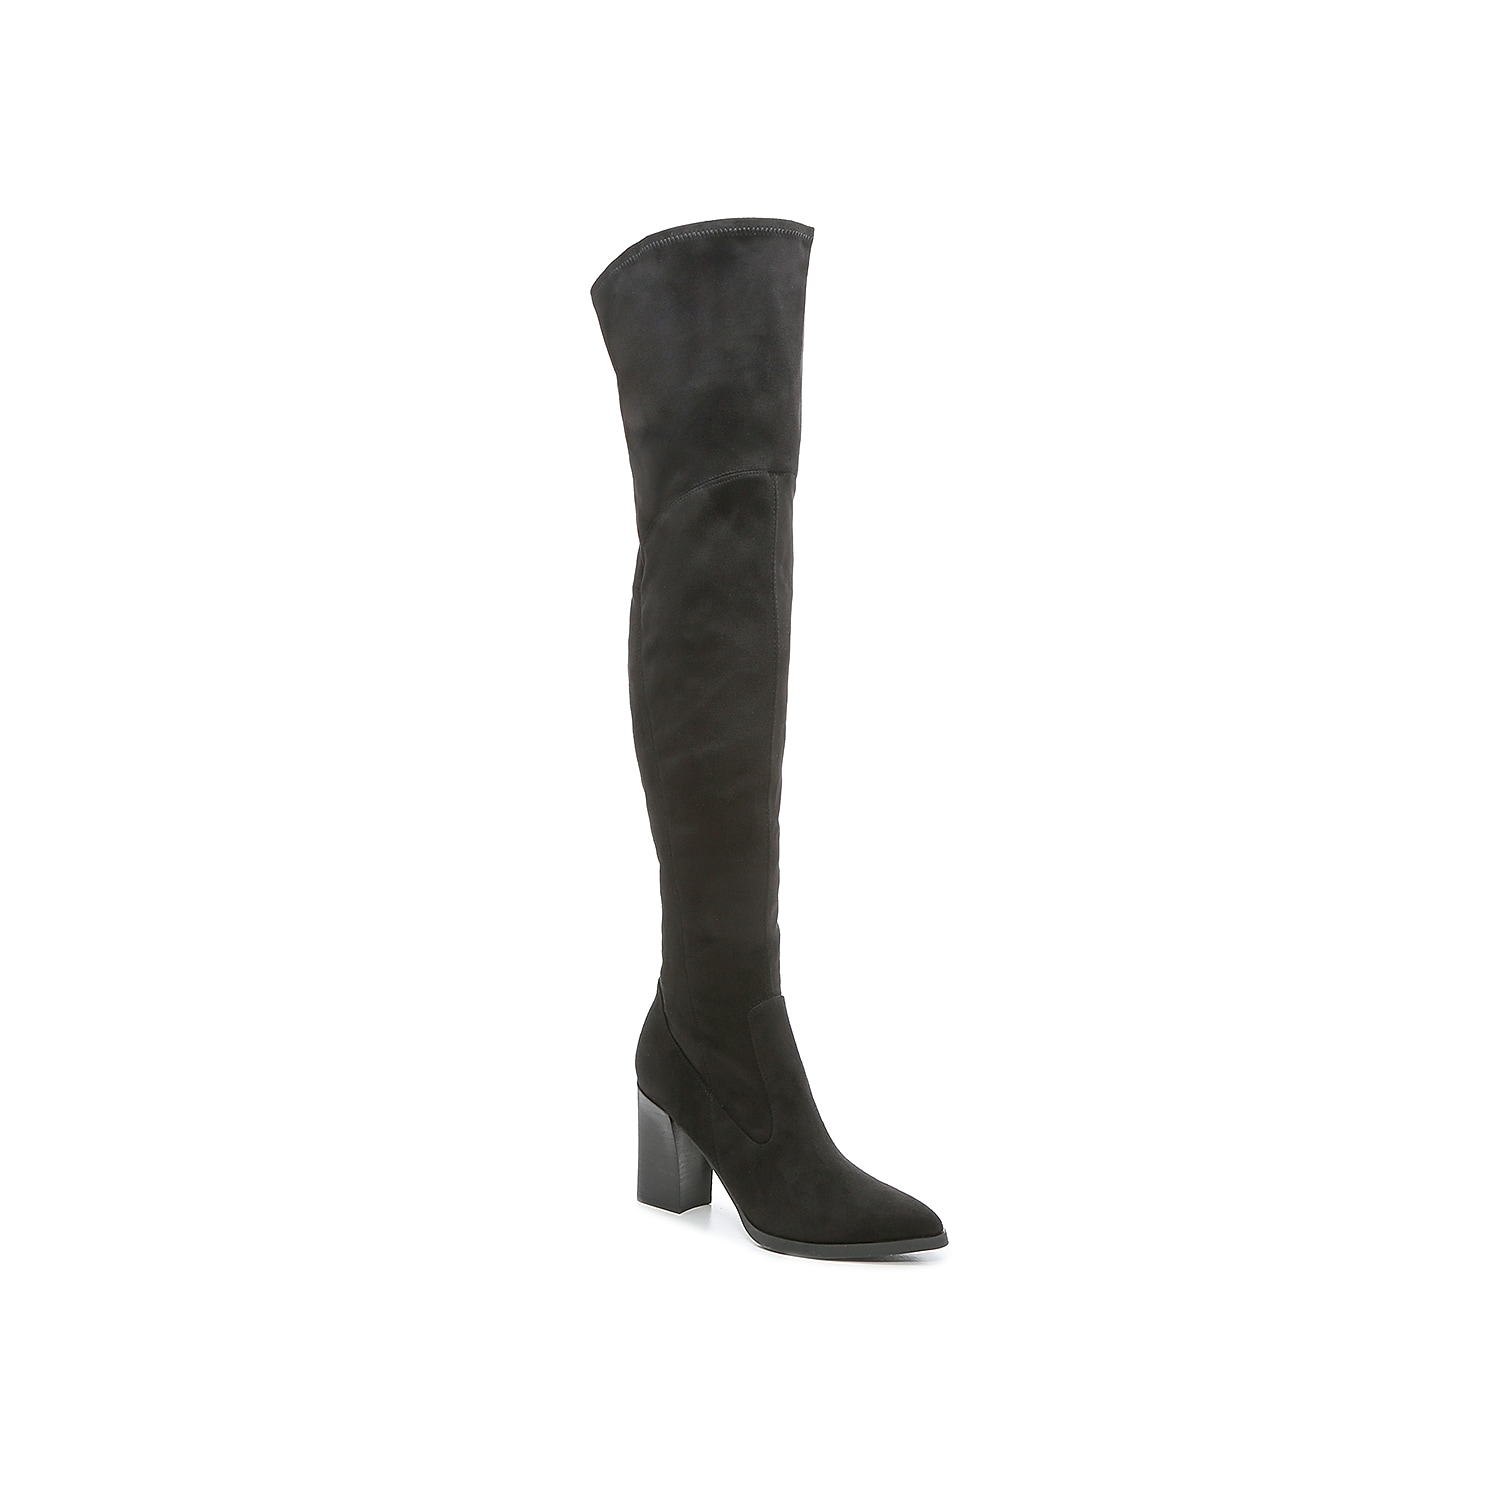 Bring on the looks by styling the Eilah OTK boot from Marc Fisher. These thigh highs feature a curve-hugging shape in soft suedette fabric that stretches slightly at the topline for pull-on ease. A high heel and pointed toe add to the drama. Click here for Boot Measuring Guide.